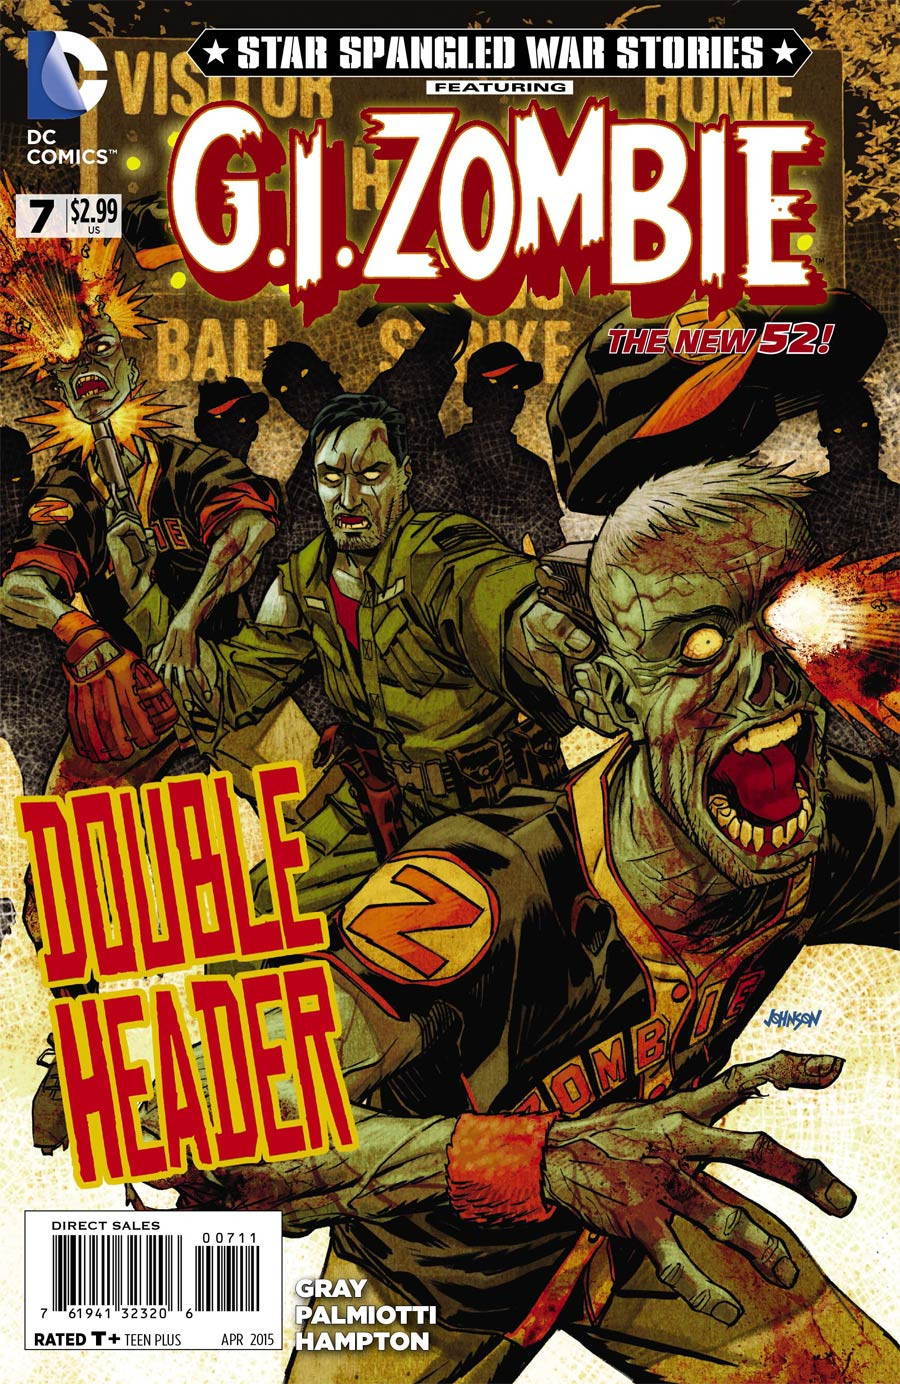 Star-Spangled War Stories Featuring GI Zombie #7